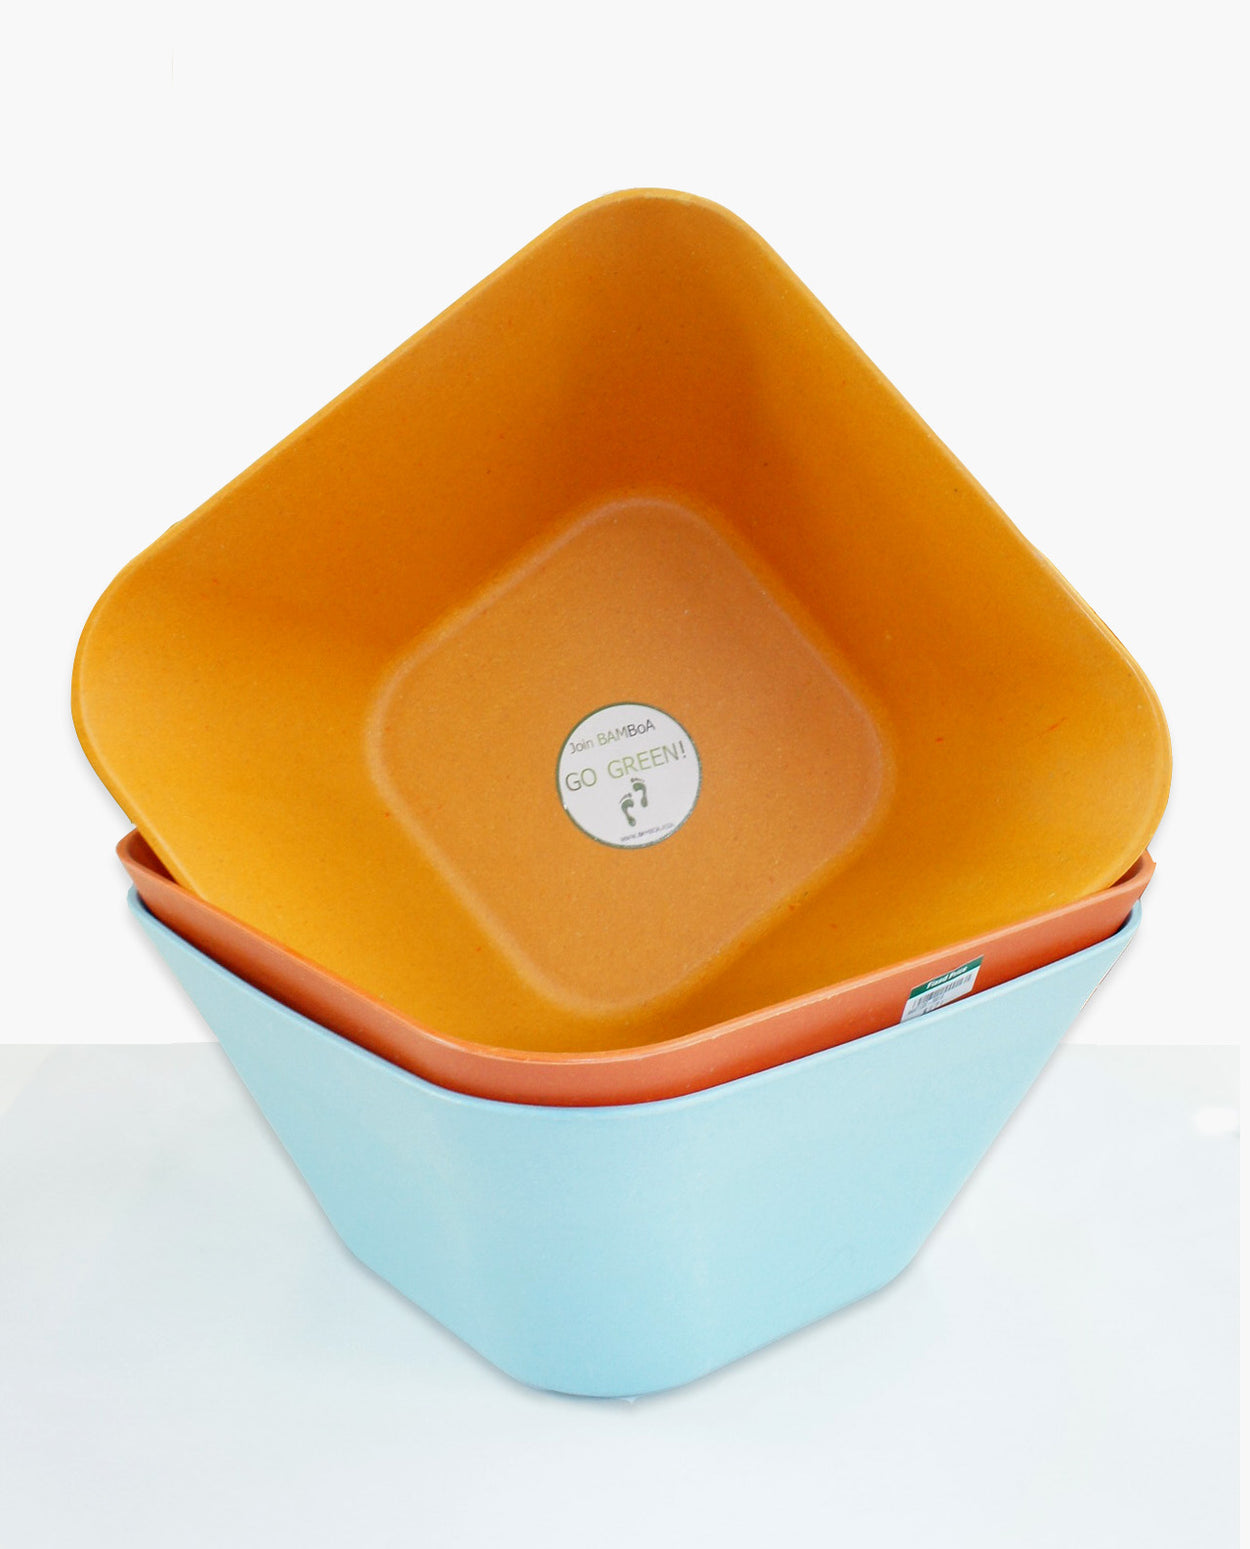 Bamboo Kitchen Fibra Bamboo Fiber Square Bowl Orange